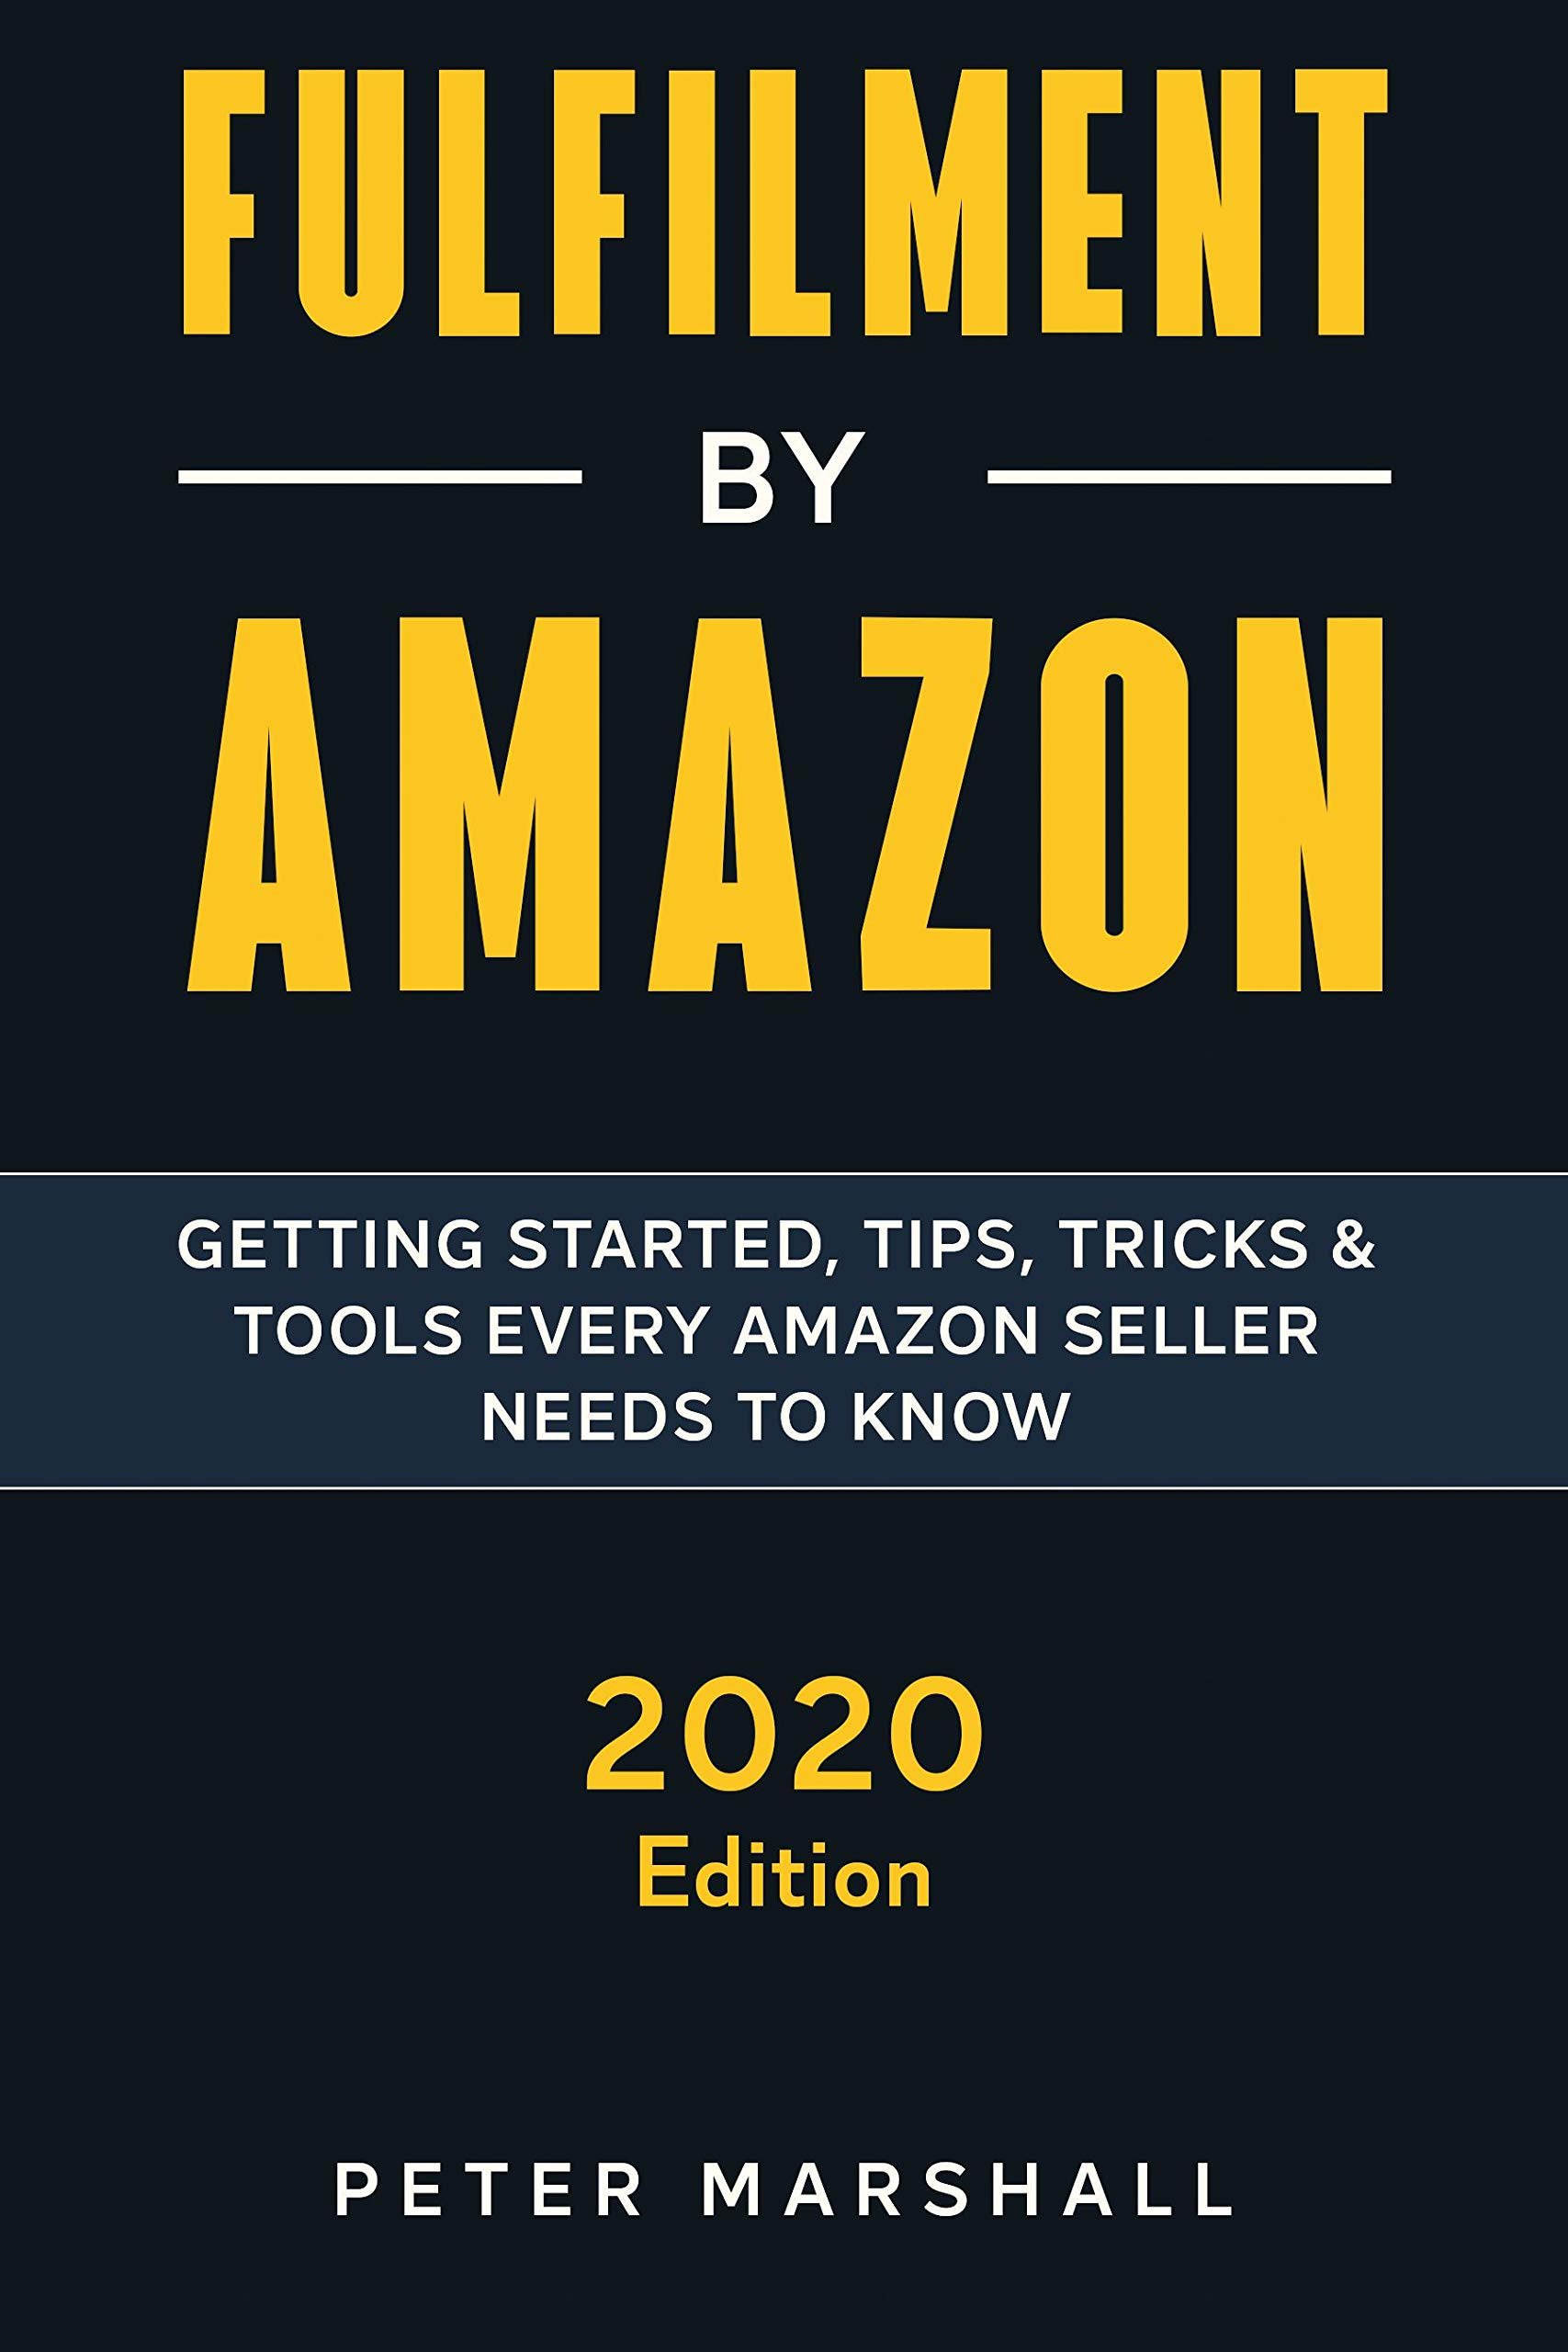 Fulfilment By Amazon : Best-Kept Secrets to Making Money Online to Help You Master Amazon FBA and Build a Successful Business